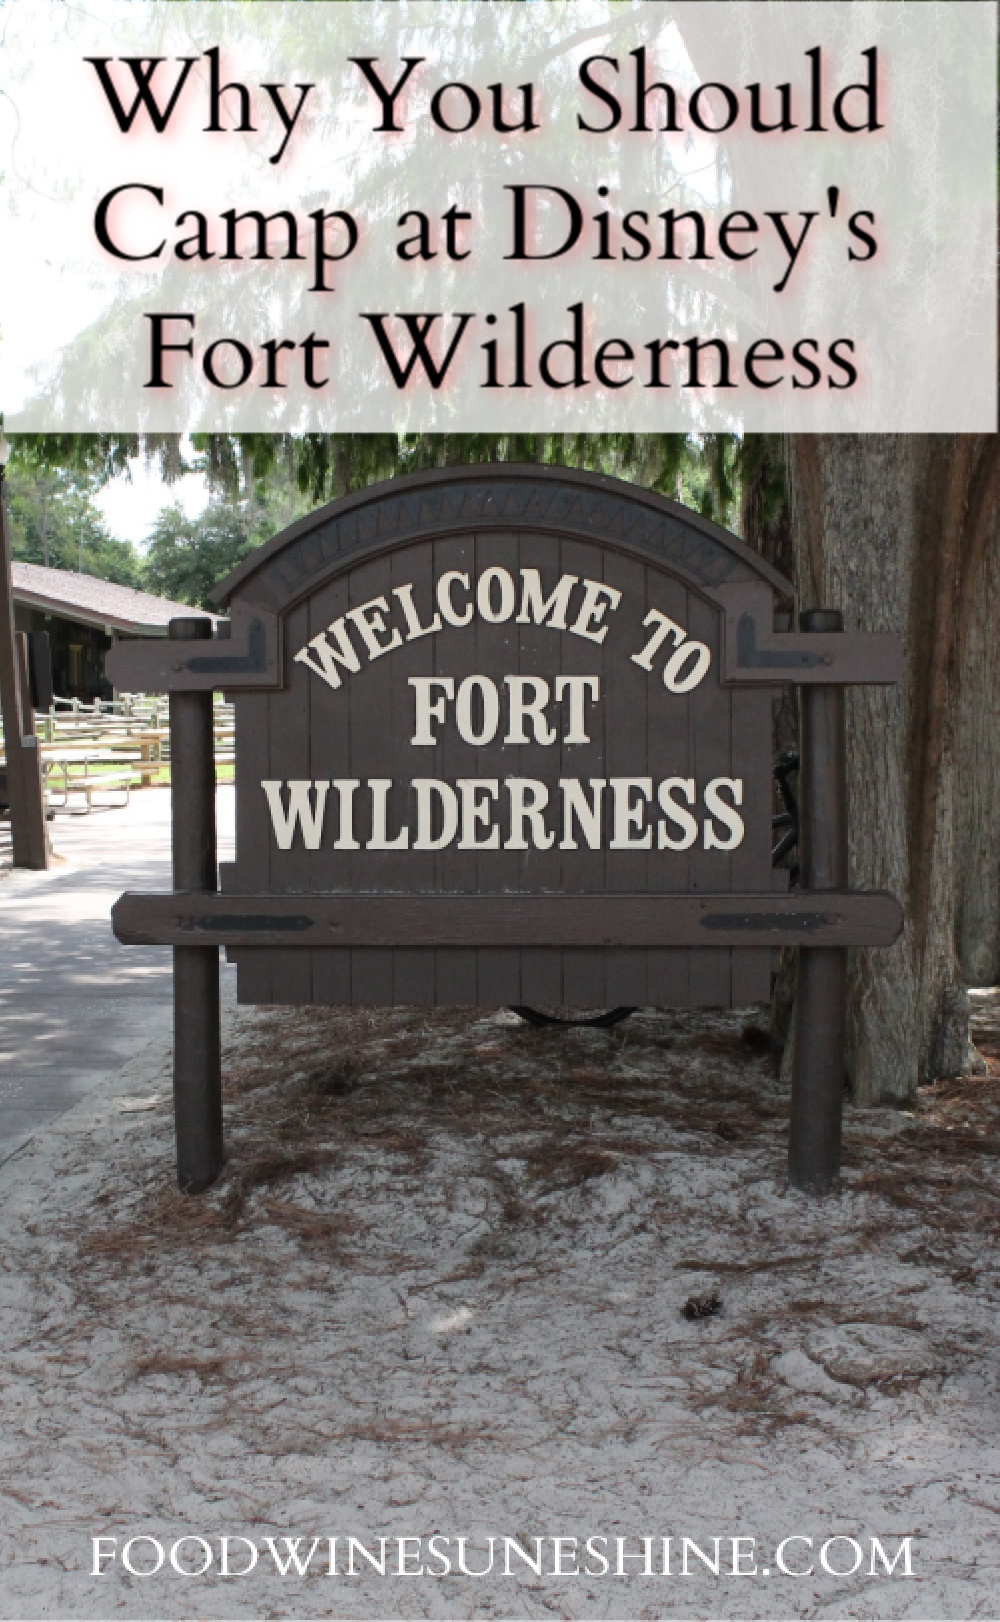 Why You Should Camp at Disney's Fort Wilderness